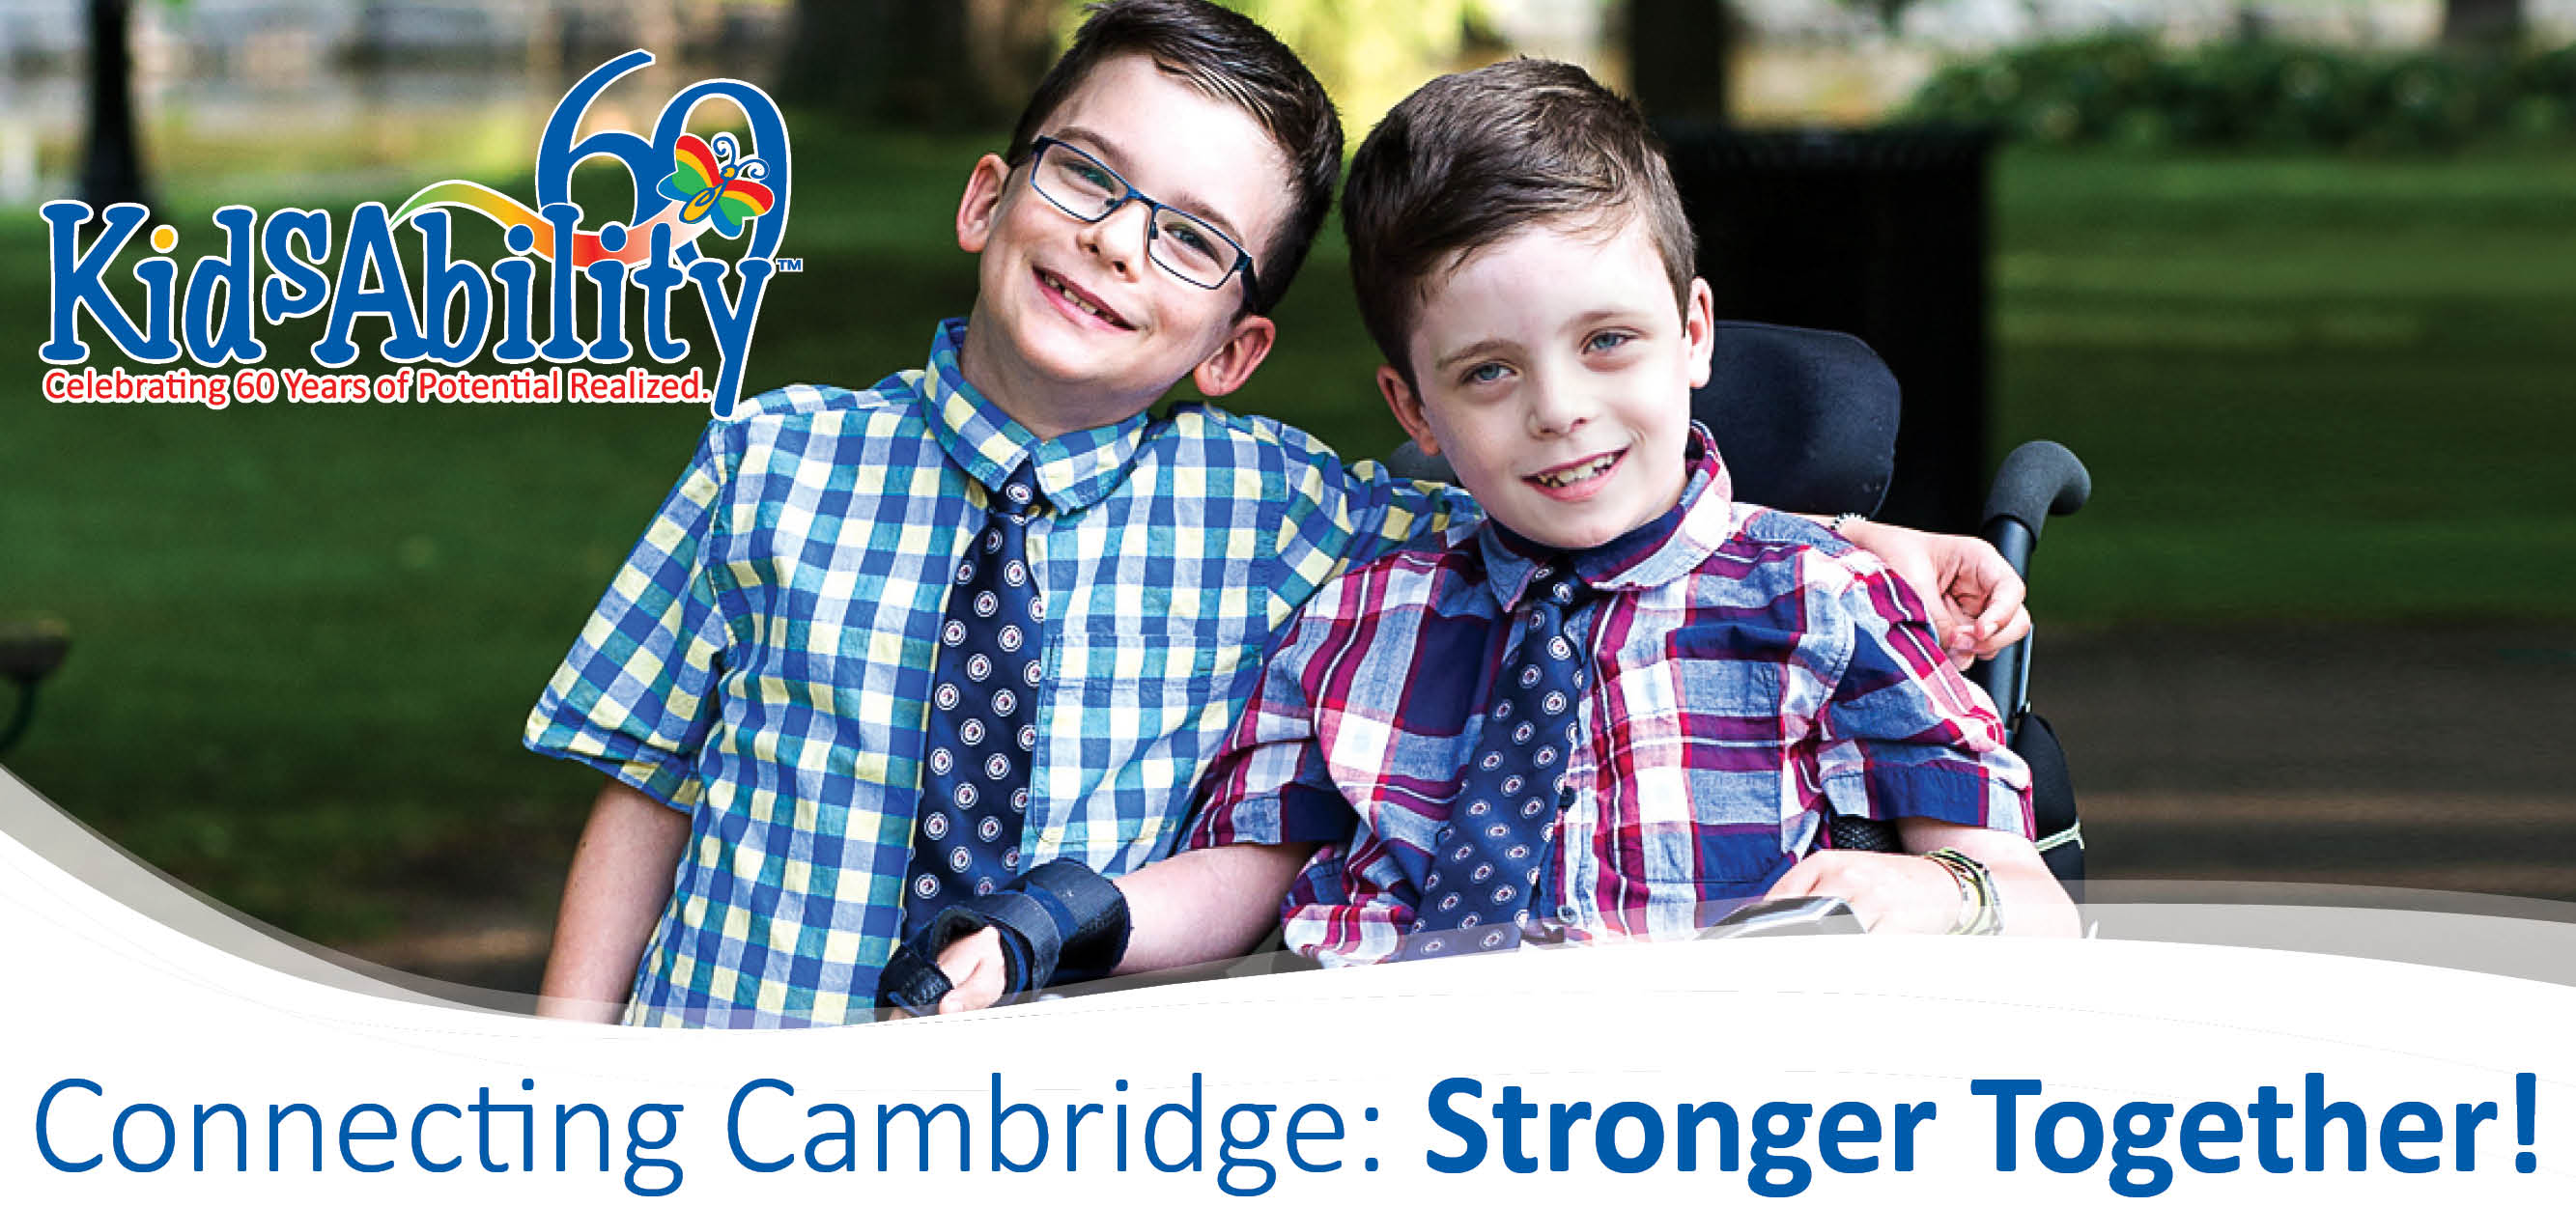 Connecting Cambridge: Stronger Together!